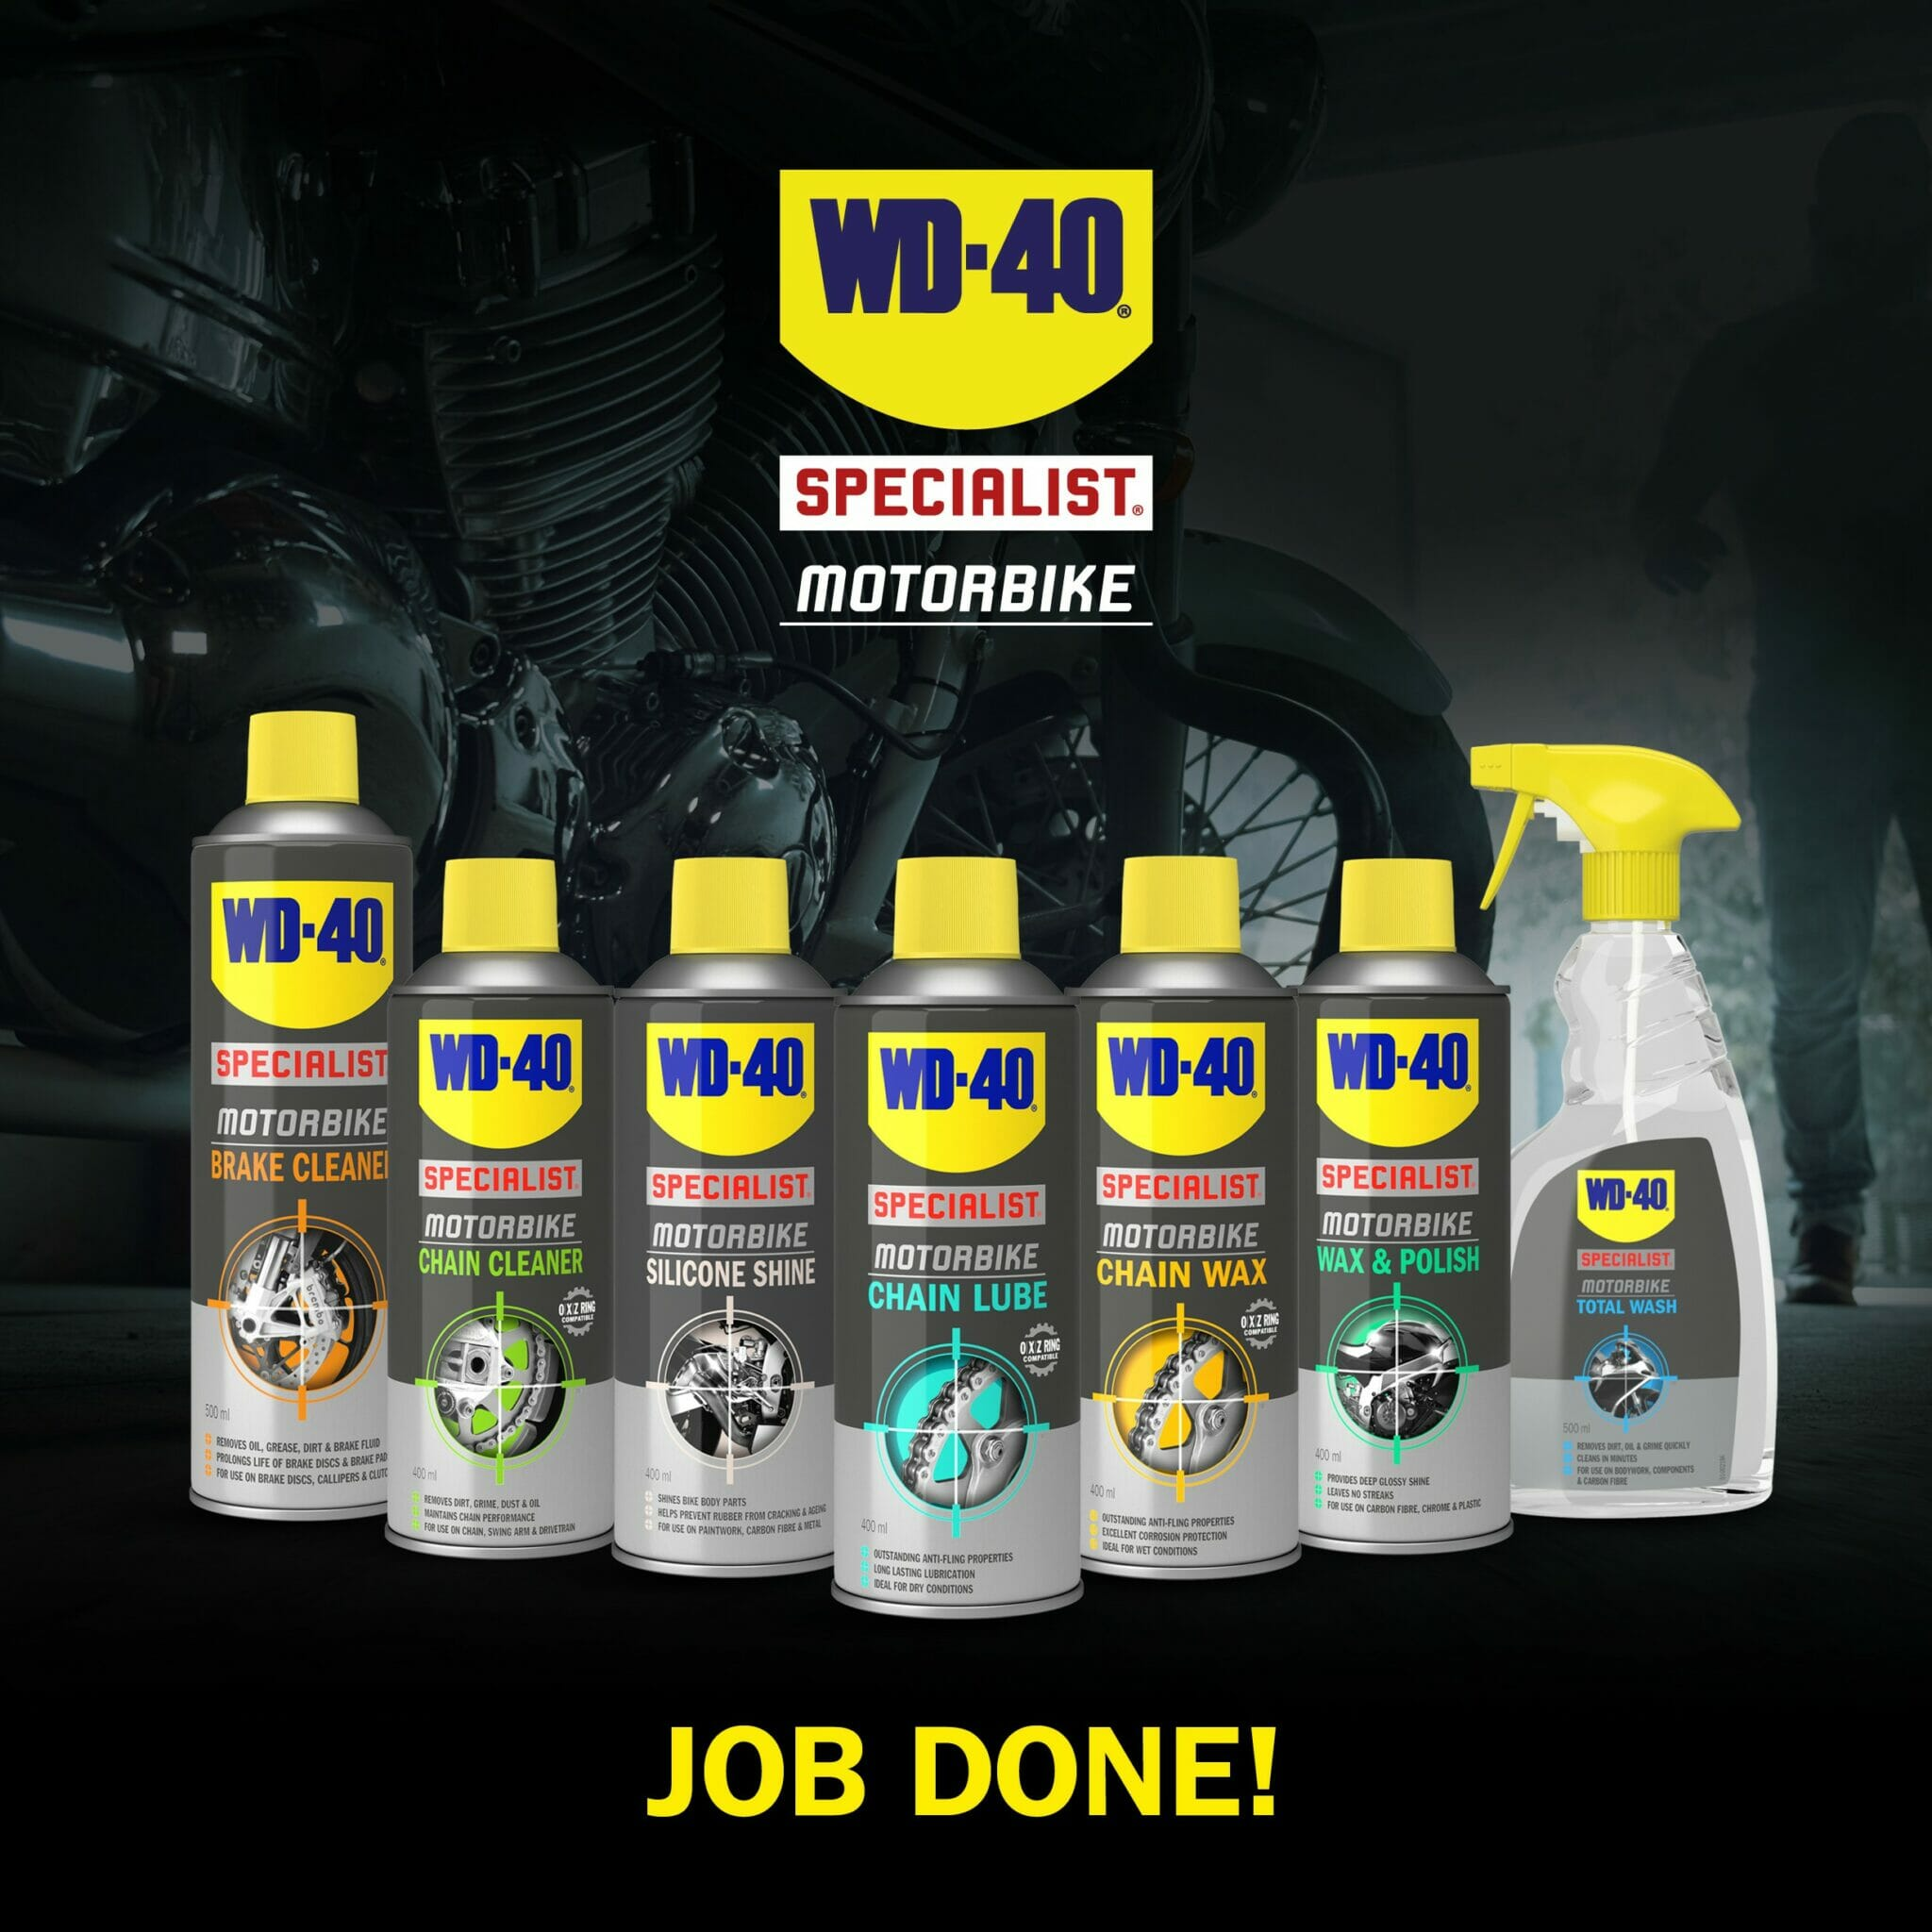 wd40 motorbike brake cleaner how to use part 8